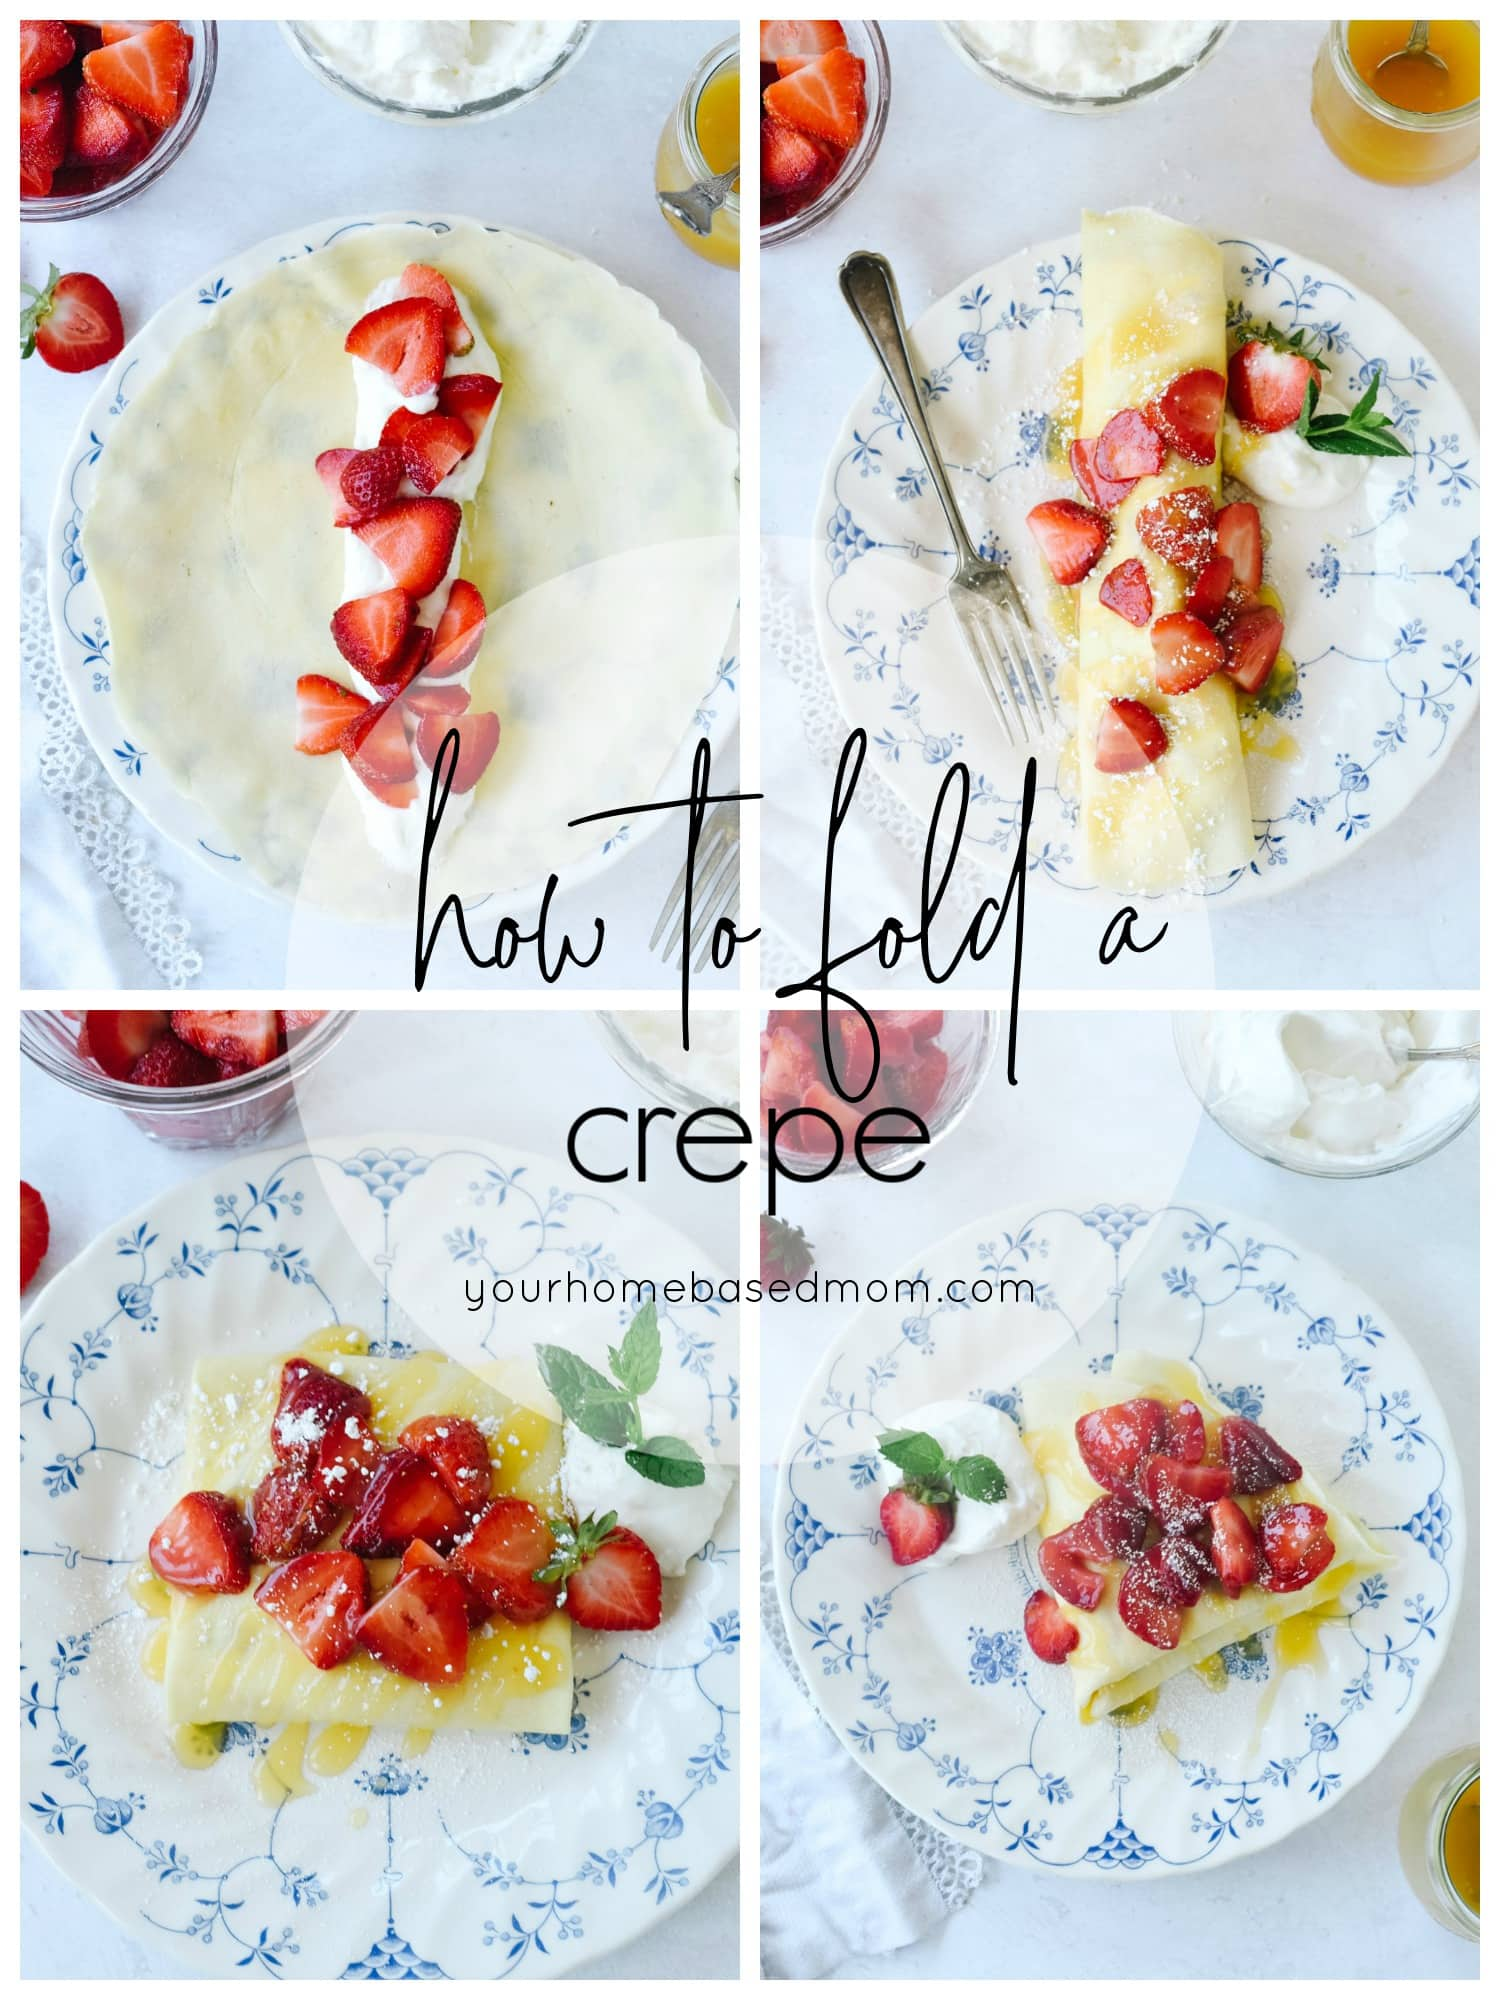 pictures of french crepes